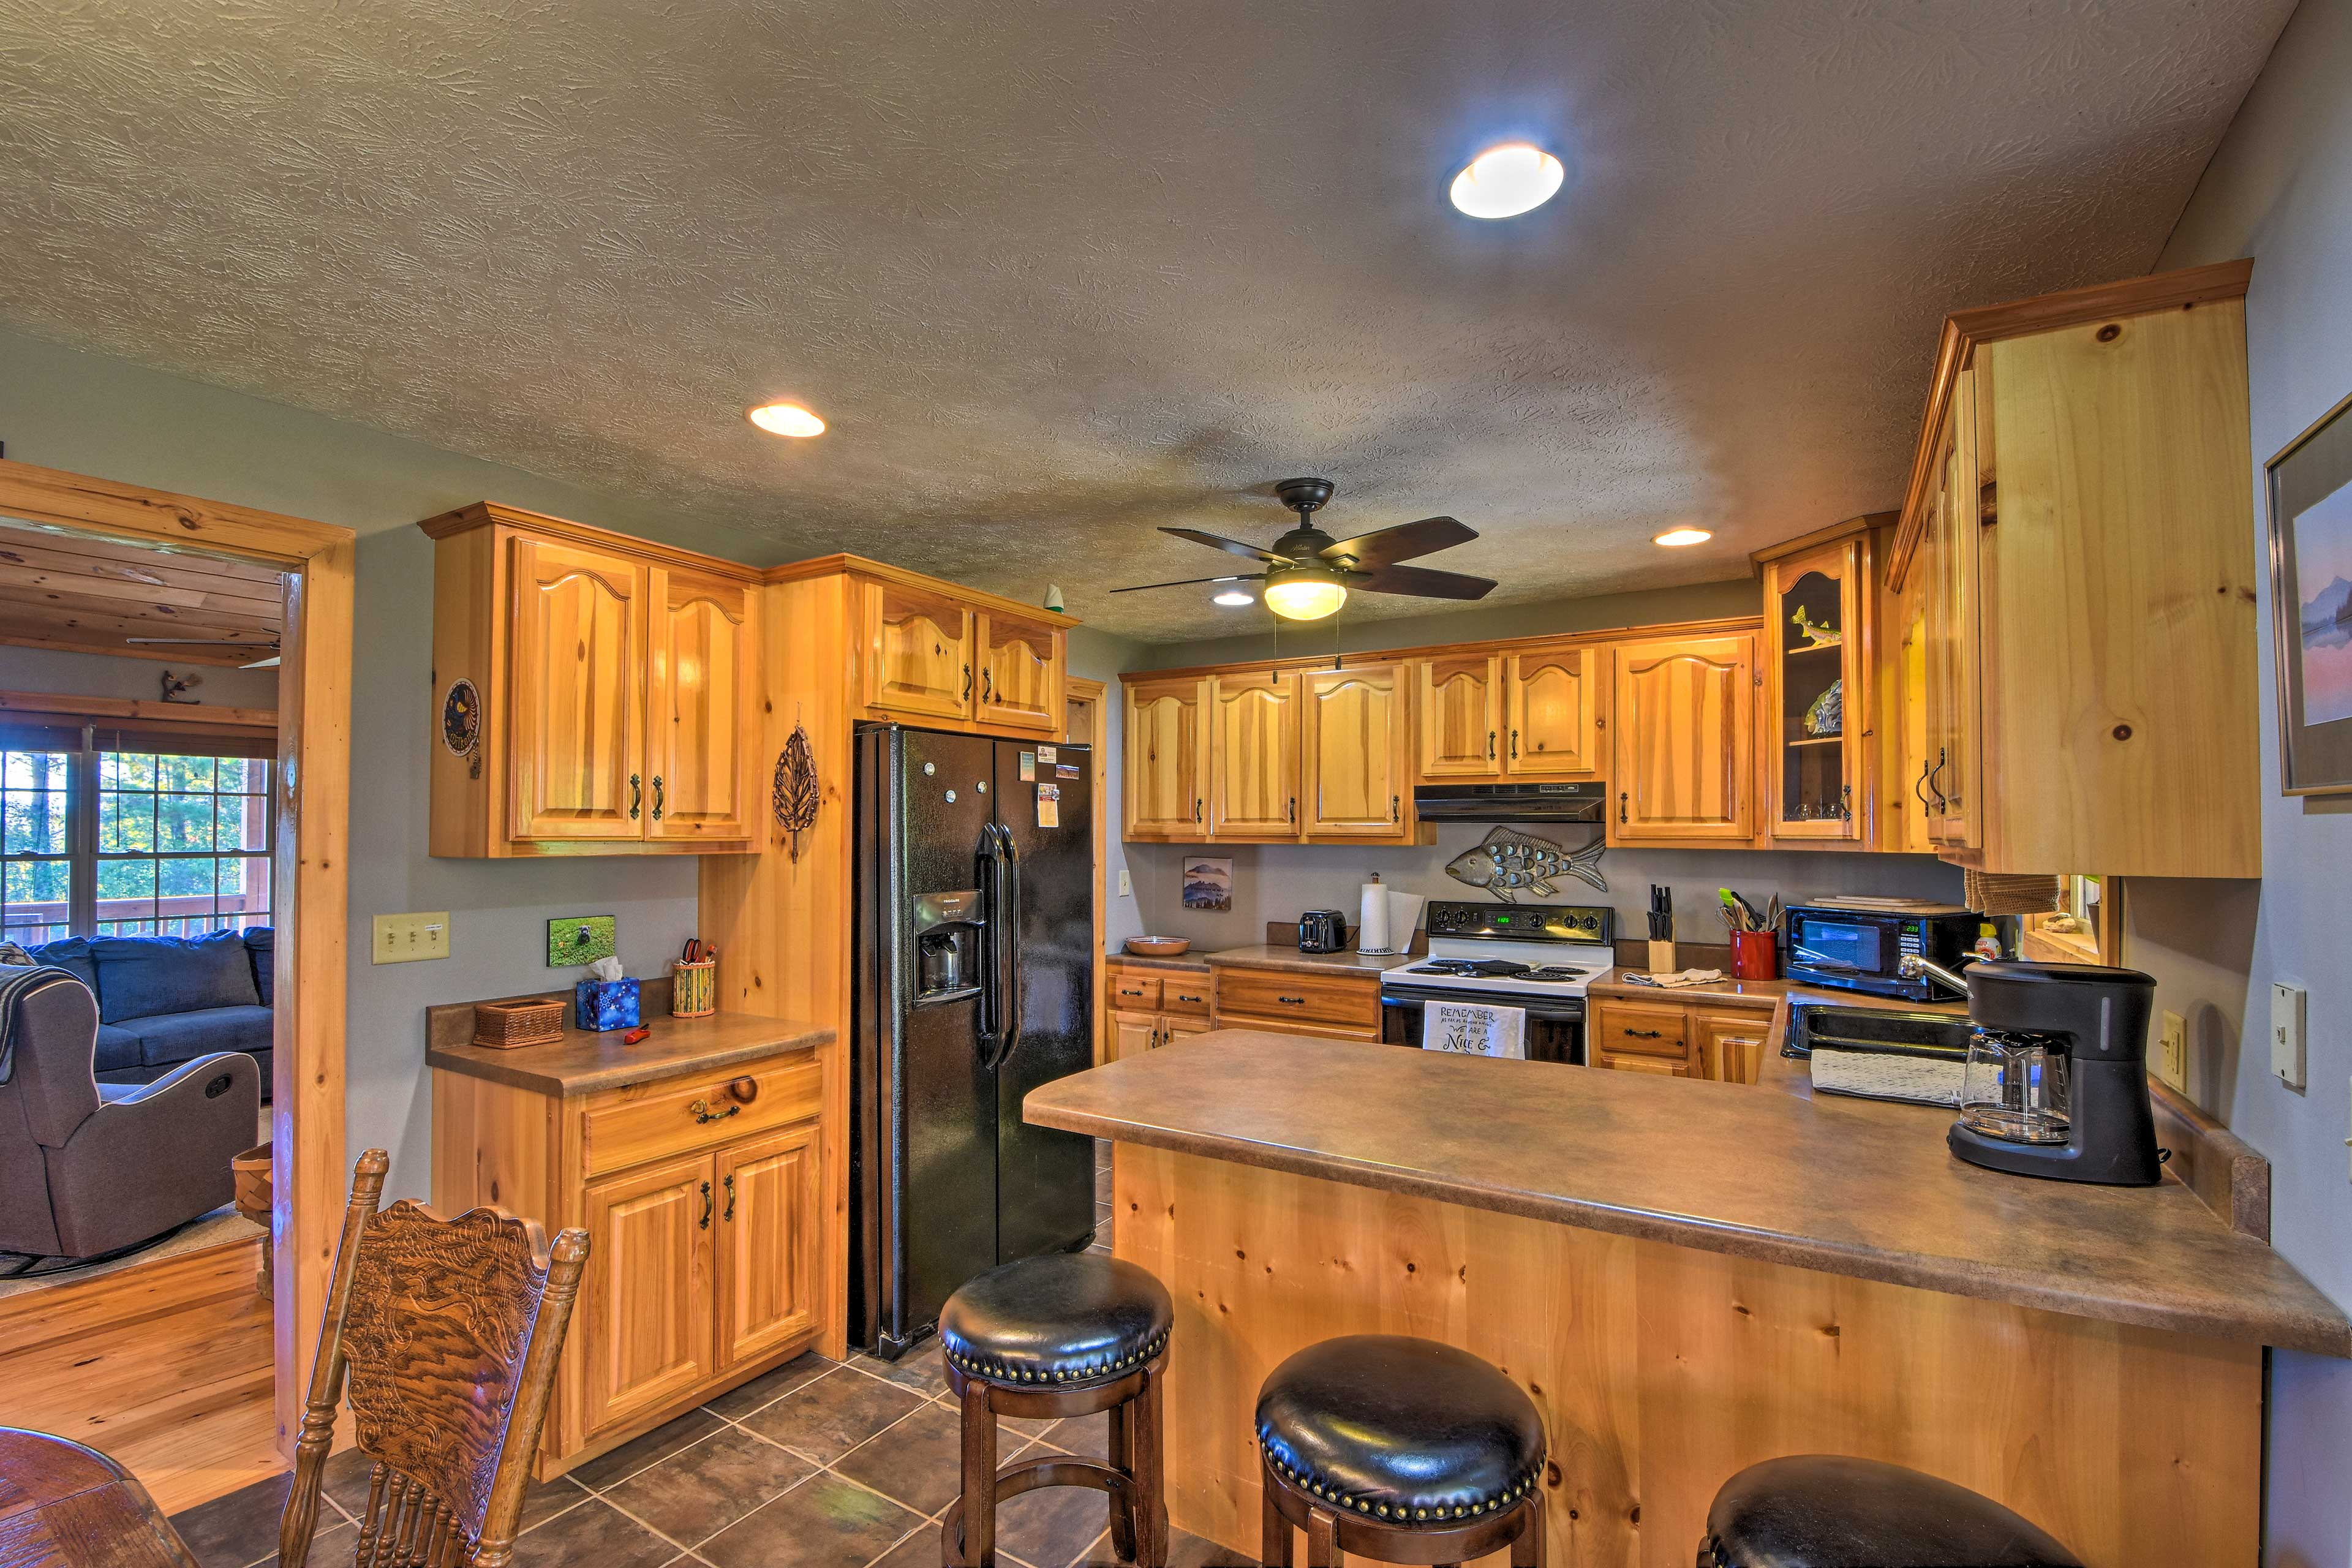 The fully equipped kitchen features all essential cookware.